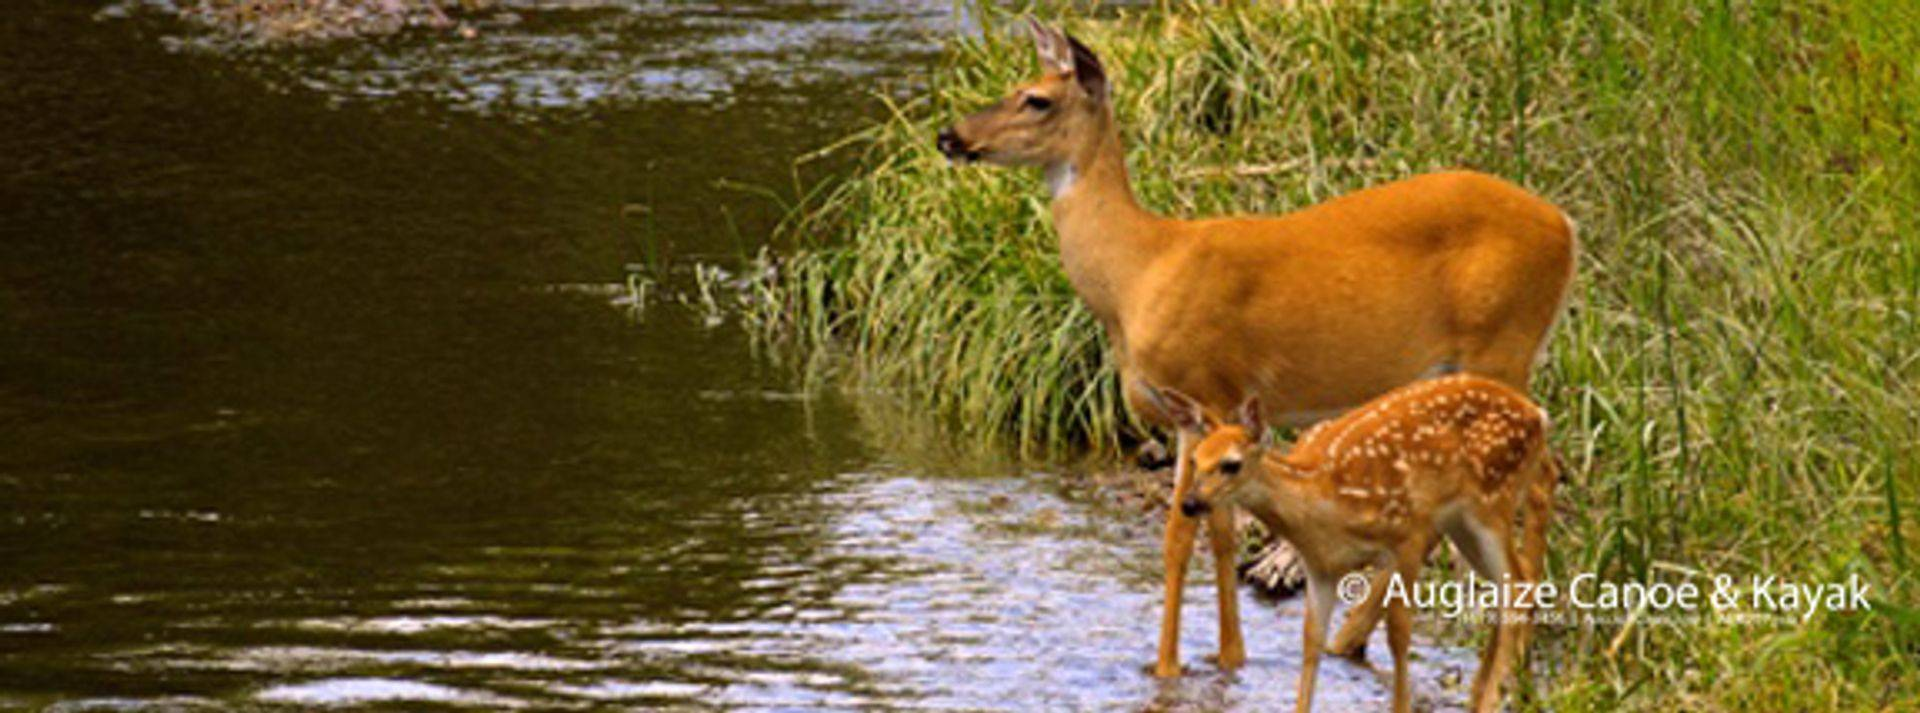 Enjoy the wildlife: deer, raccoons, turtles, geese, ducks, swans, river otters and an occasional sighting of an eagle